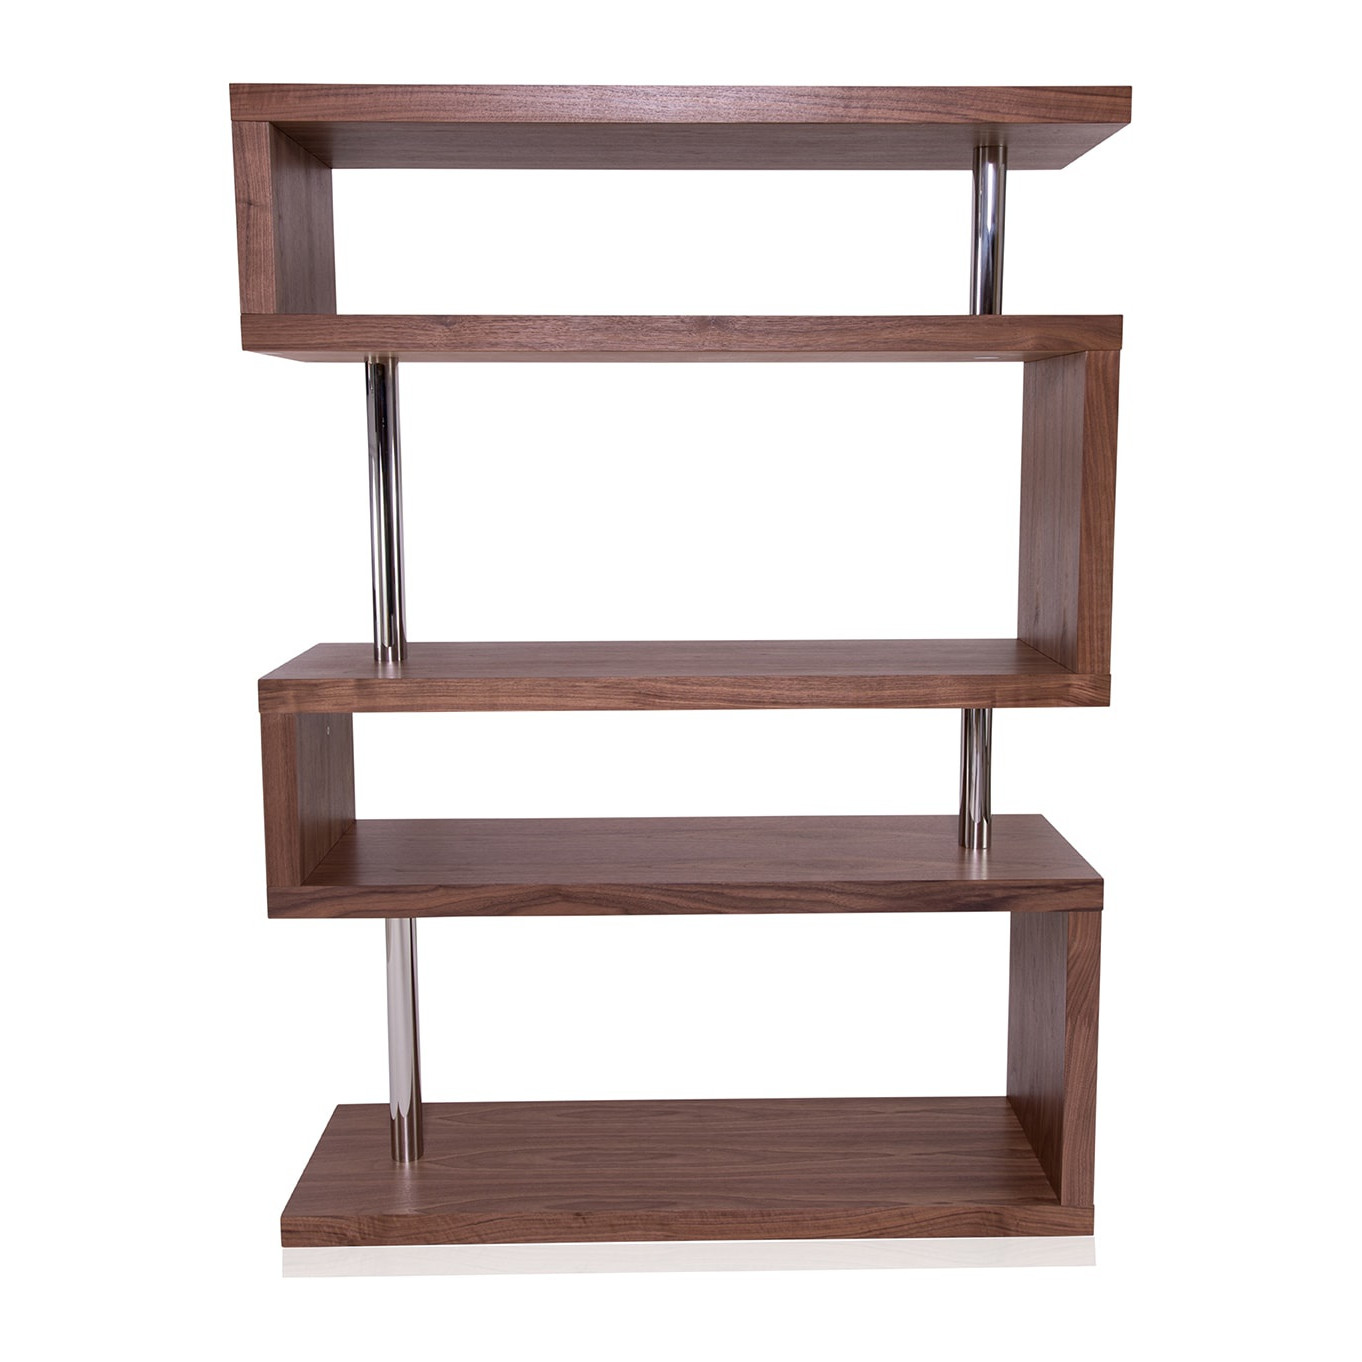 UrbanMod-UrbanMod-65-Accent-Shelves-Bookcase